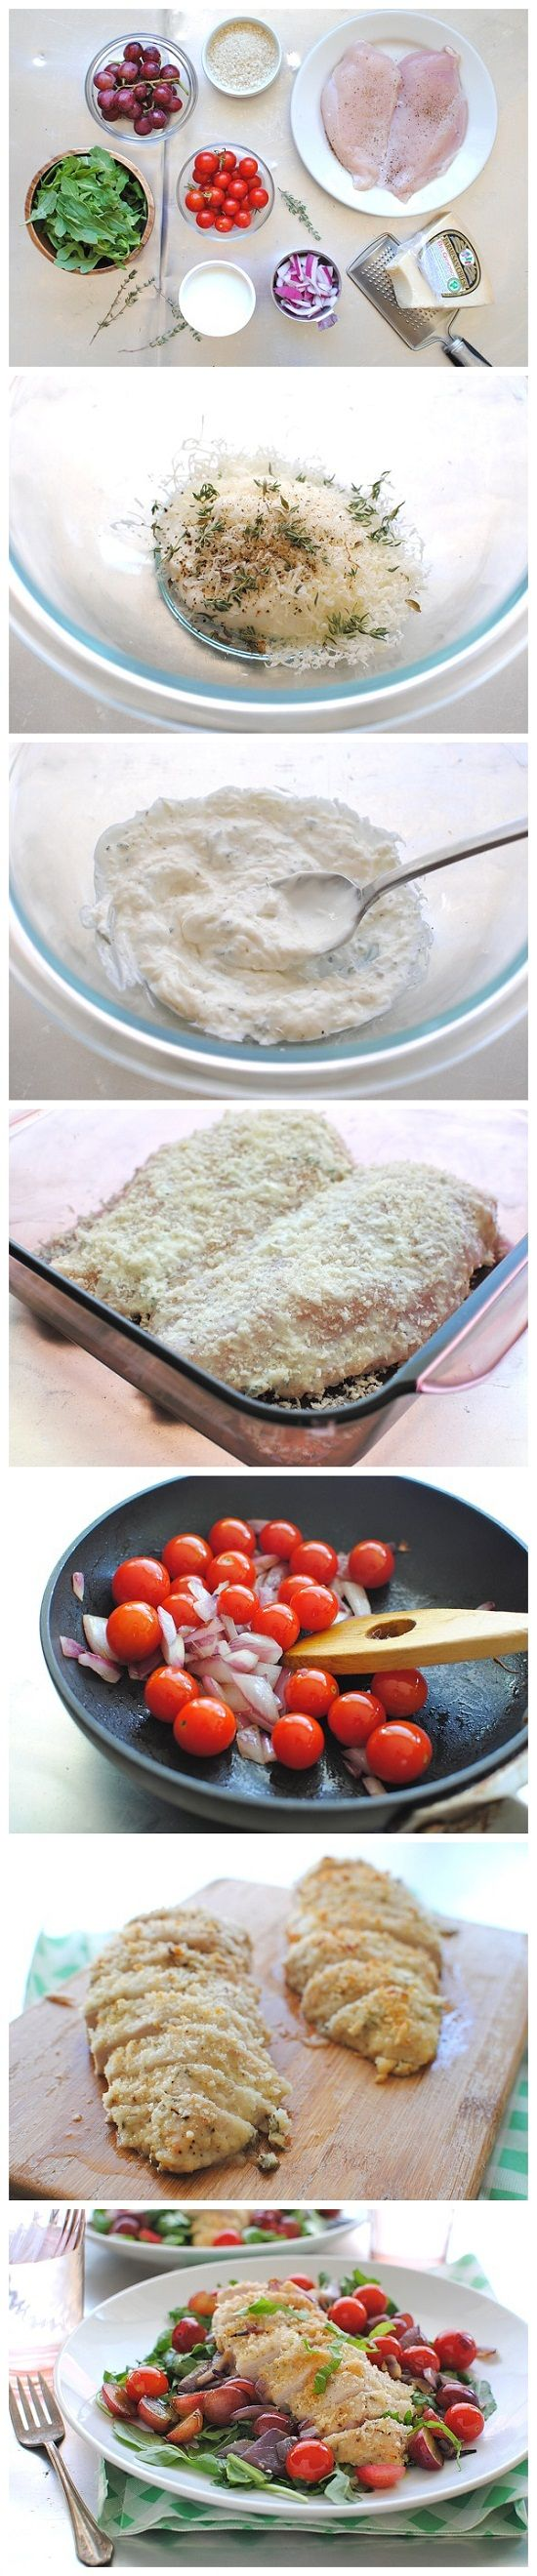 Chicken Parmesan Salad - Ingredients: 4 Tbsp Yoplait Greek plain or light yogurt - 1/4 cup freshly grated Parmesan cheese - 1 tsp fresh thyme leaves - 1 pinch coarse salt and freshly ground pepper - 2 boneless, skinless chicken breasts - 2 Tbsp Progresso breadcrumbs - 1/4 cup red onion, diced - 1/2 cup cherry tomatoes - 4 cups arugula - 1/2 cup halved seedless red grapes - 3 Tbsp extra-virgin olive oil, divided